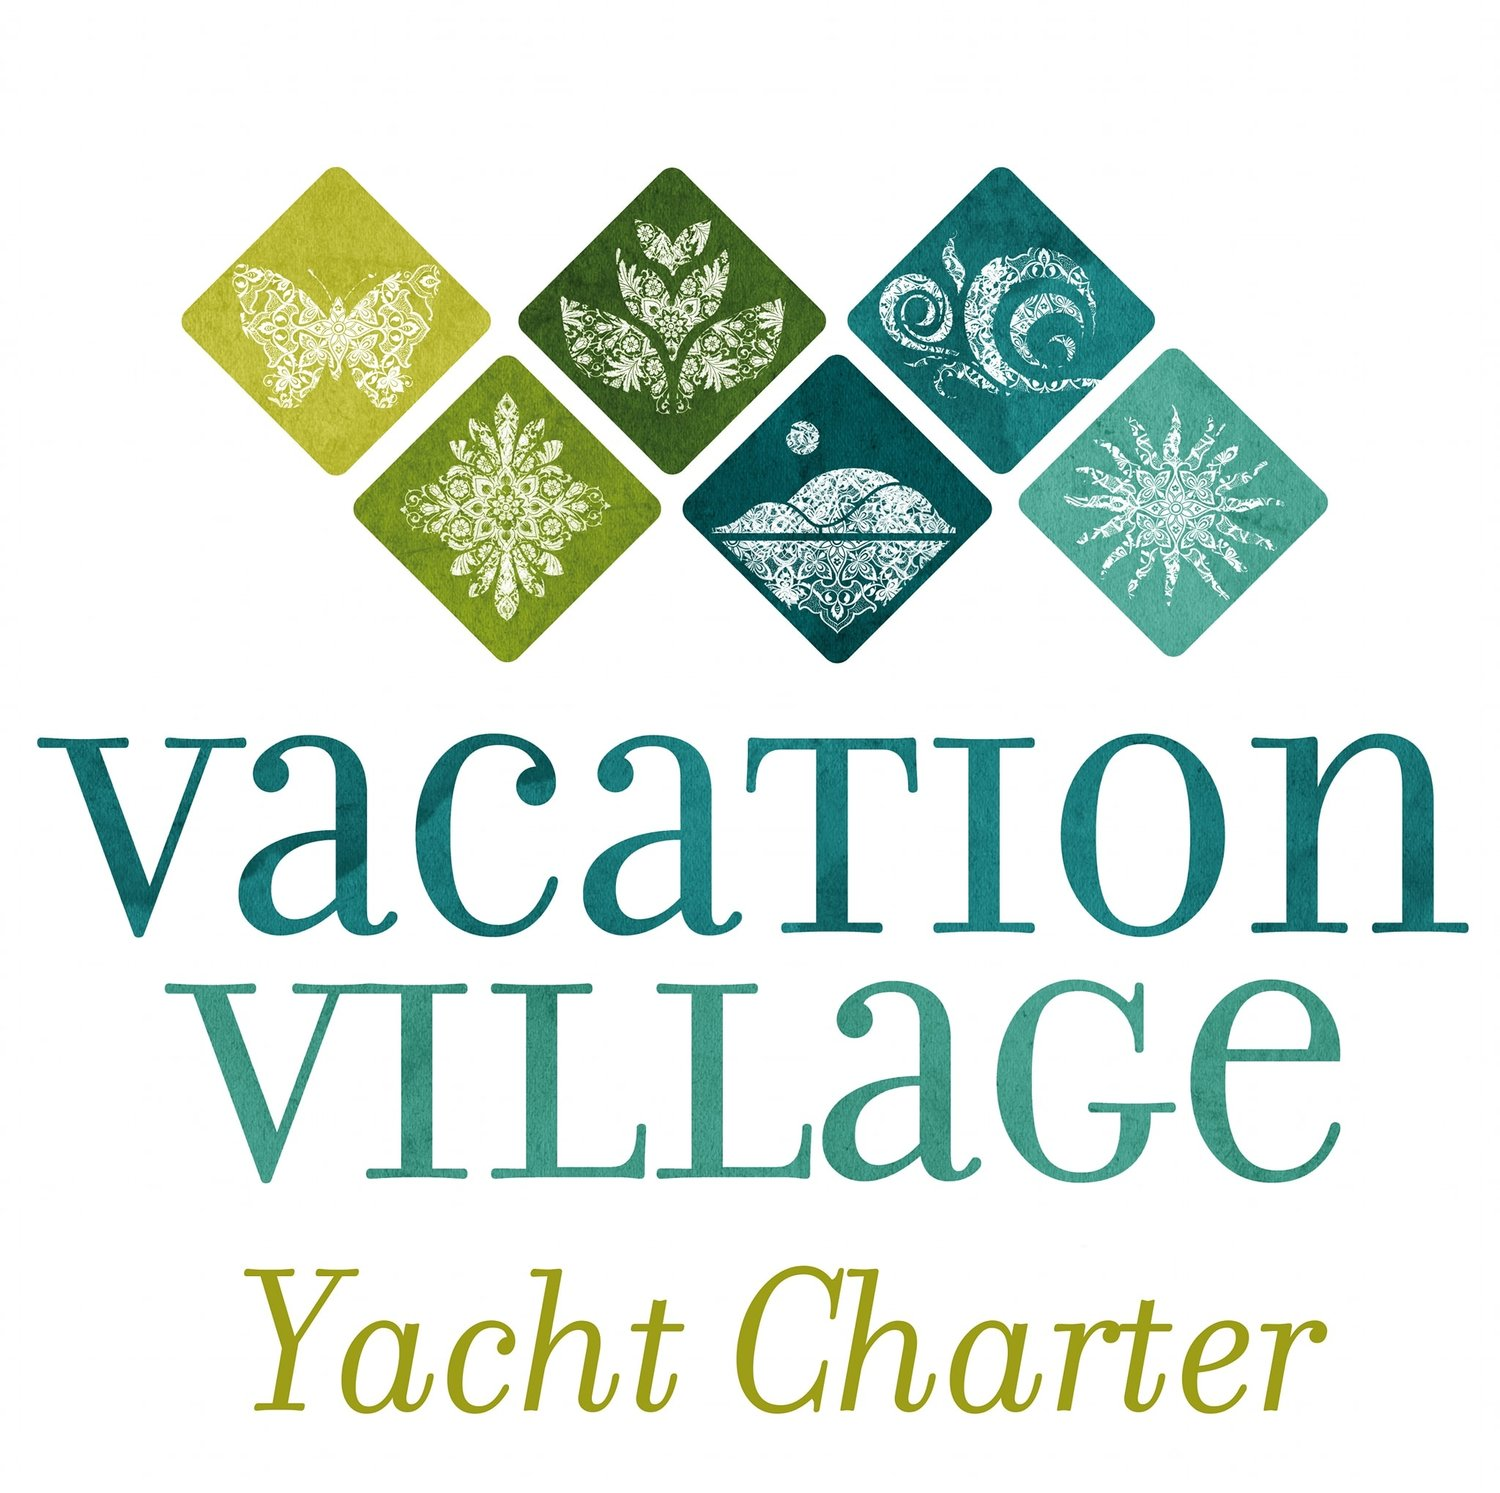 VACATION VILLAGE YACHT CHARTER